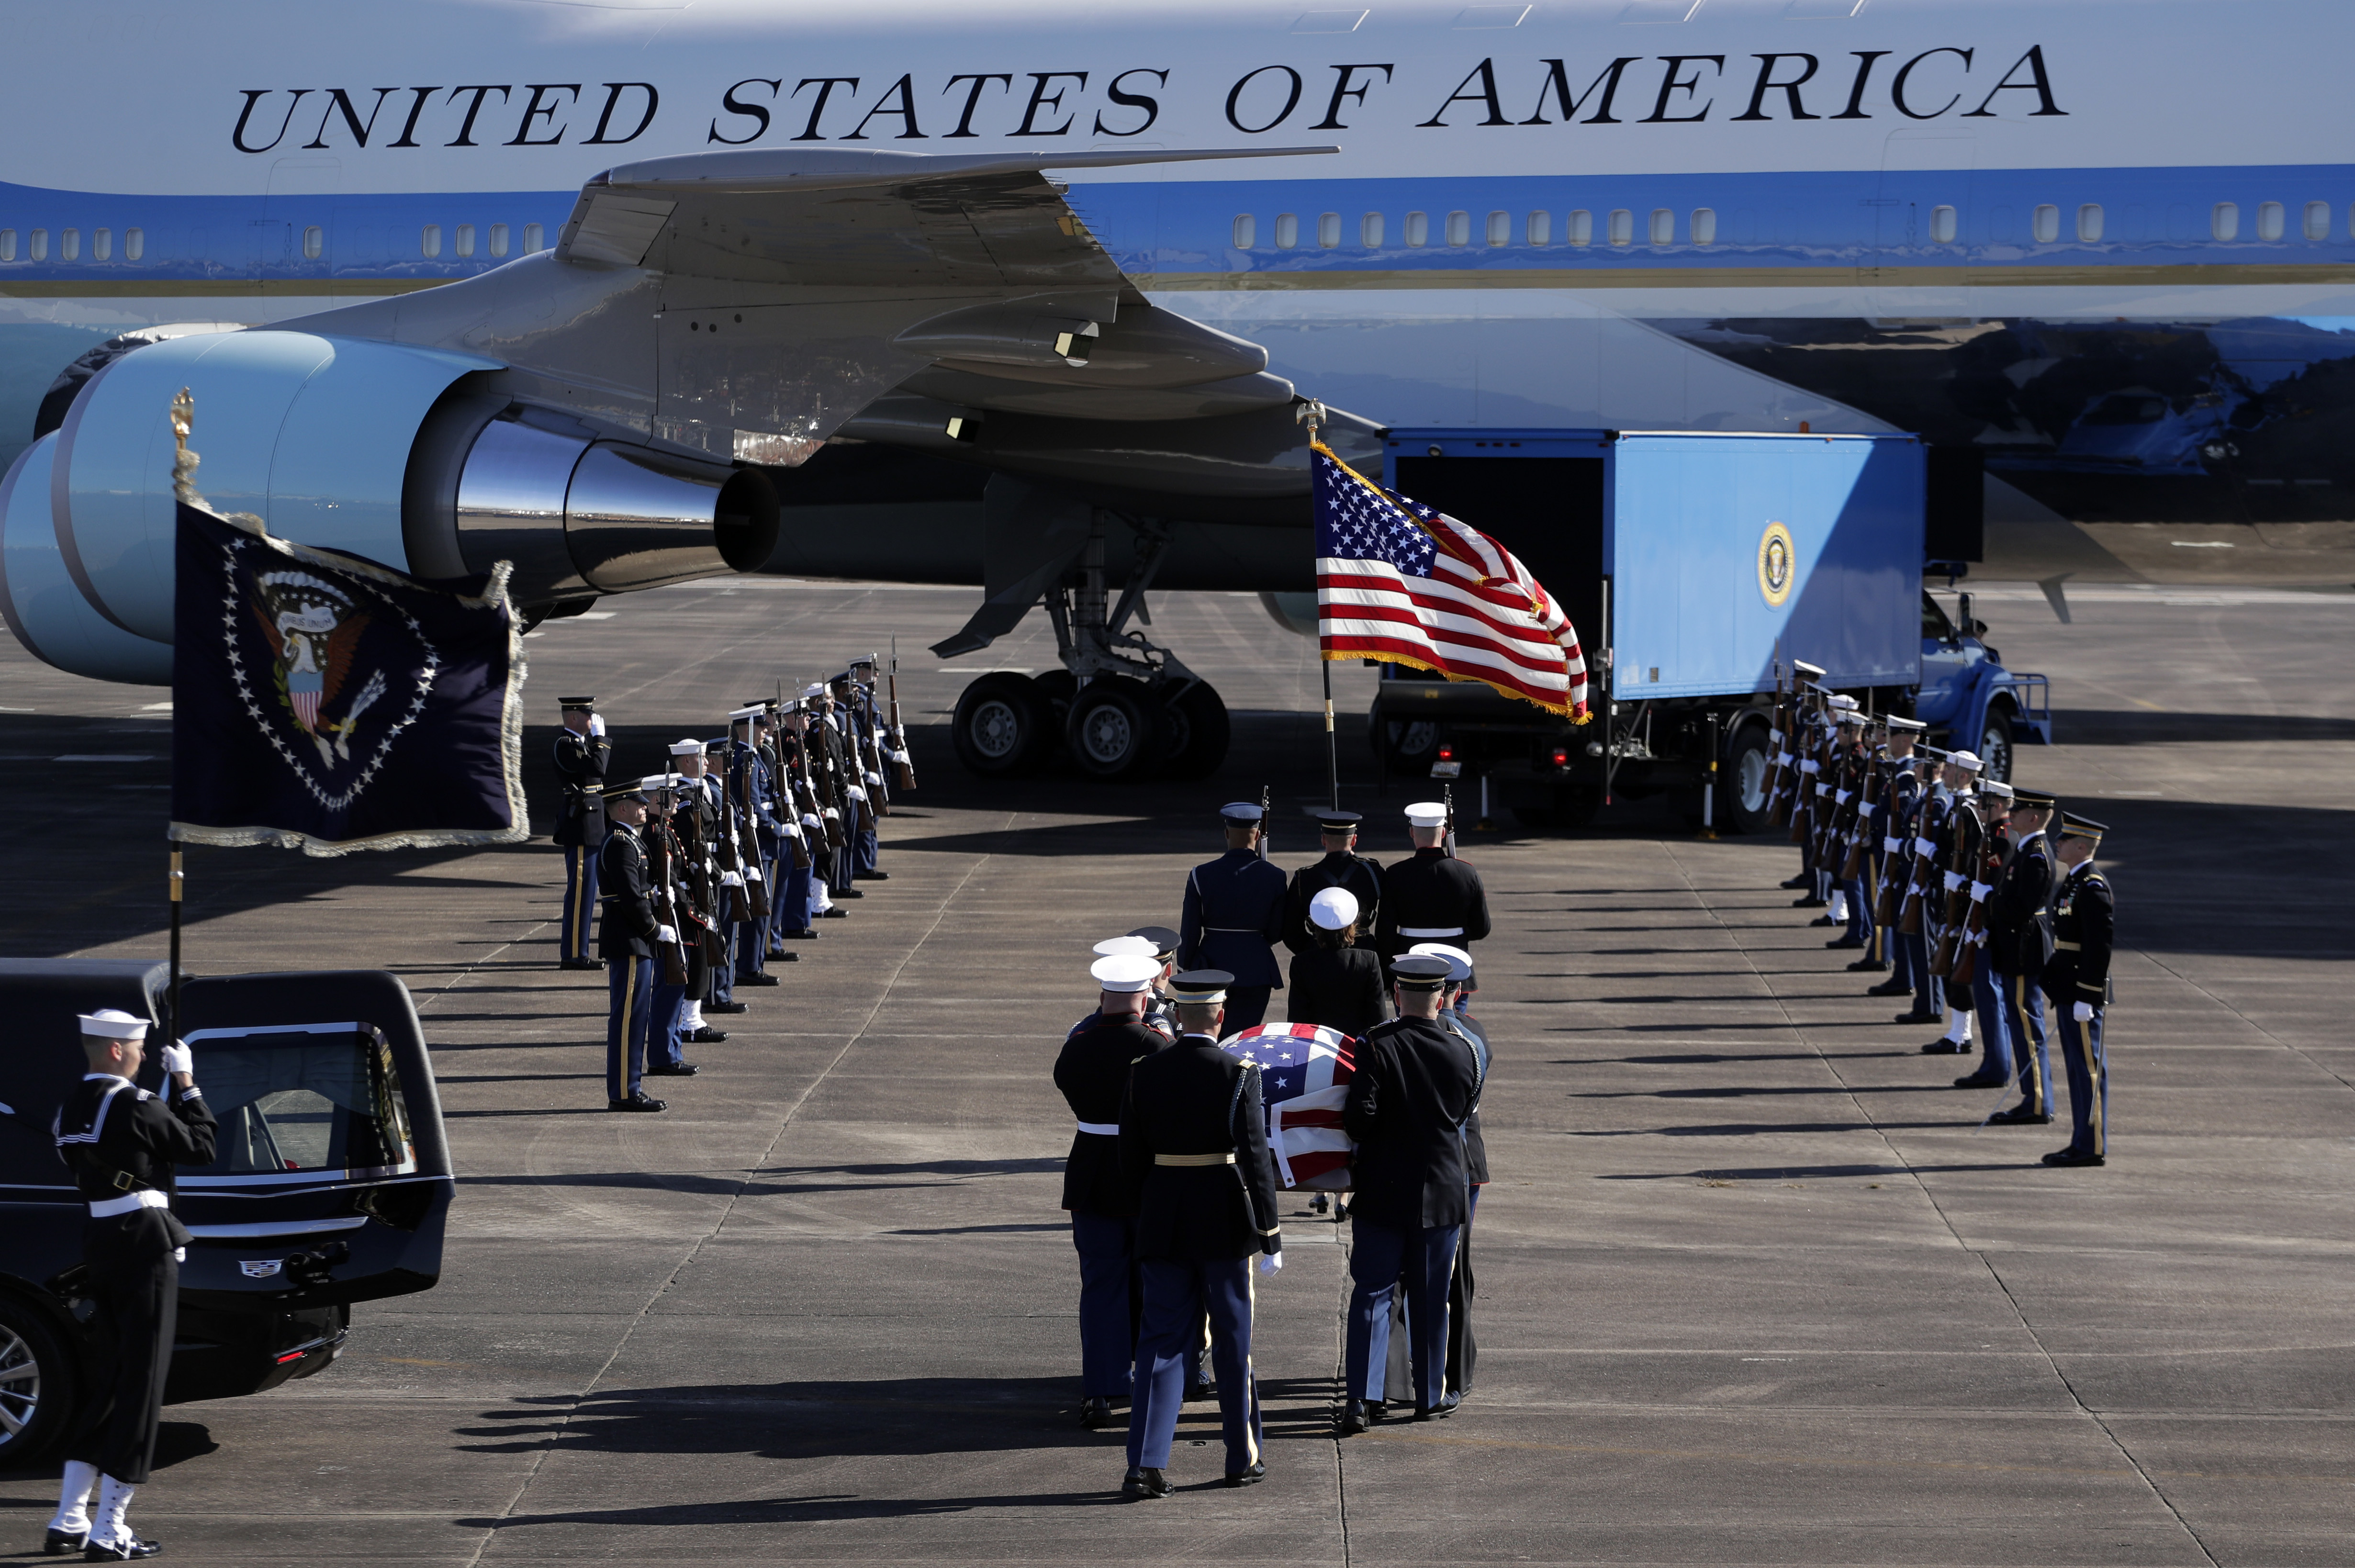 The flag-draped casket of former President George H.W. Bush is carried by a joint services military honor guard to Special Air Mission 41 at Ellington Field during a departure ceremony Monday, Dec. 3, 2018, in Houston, TX.